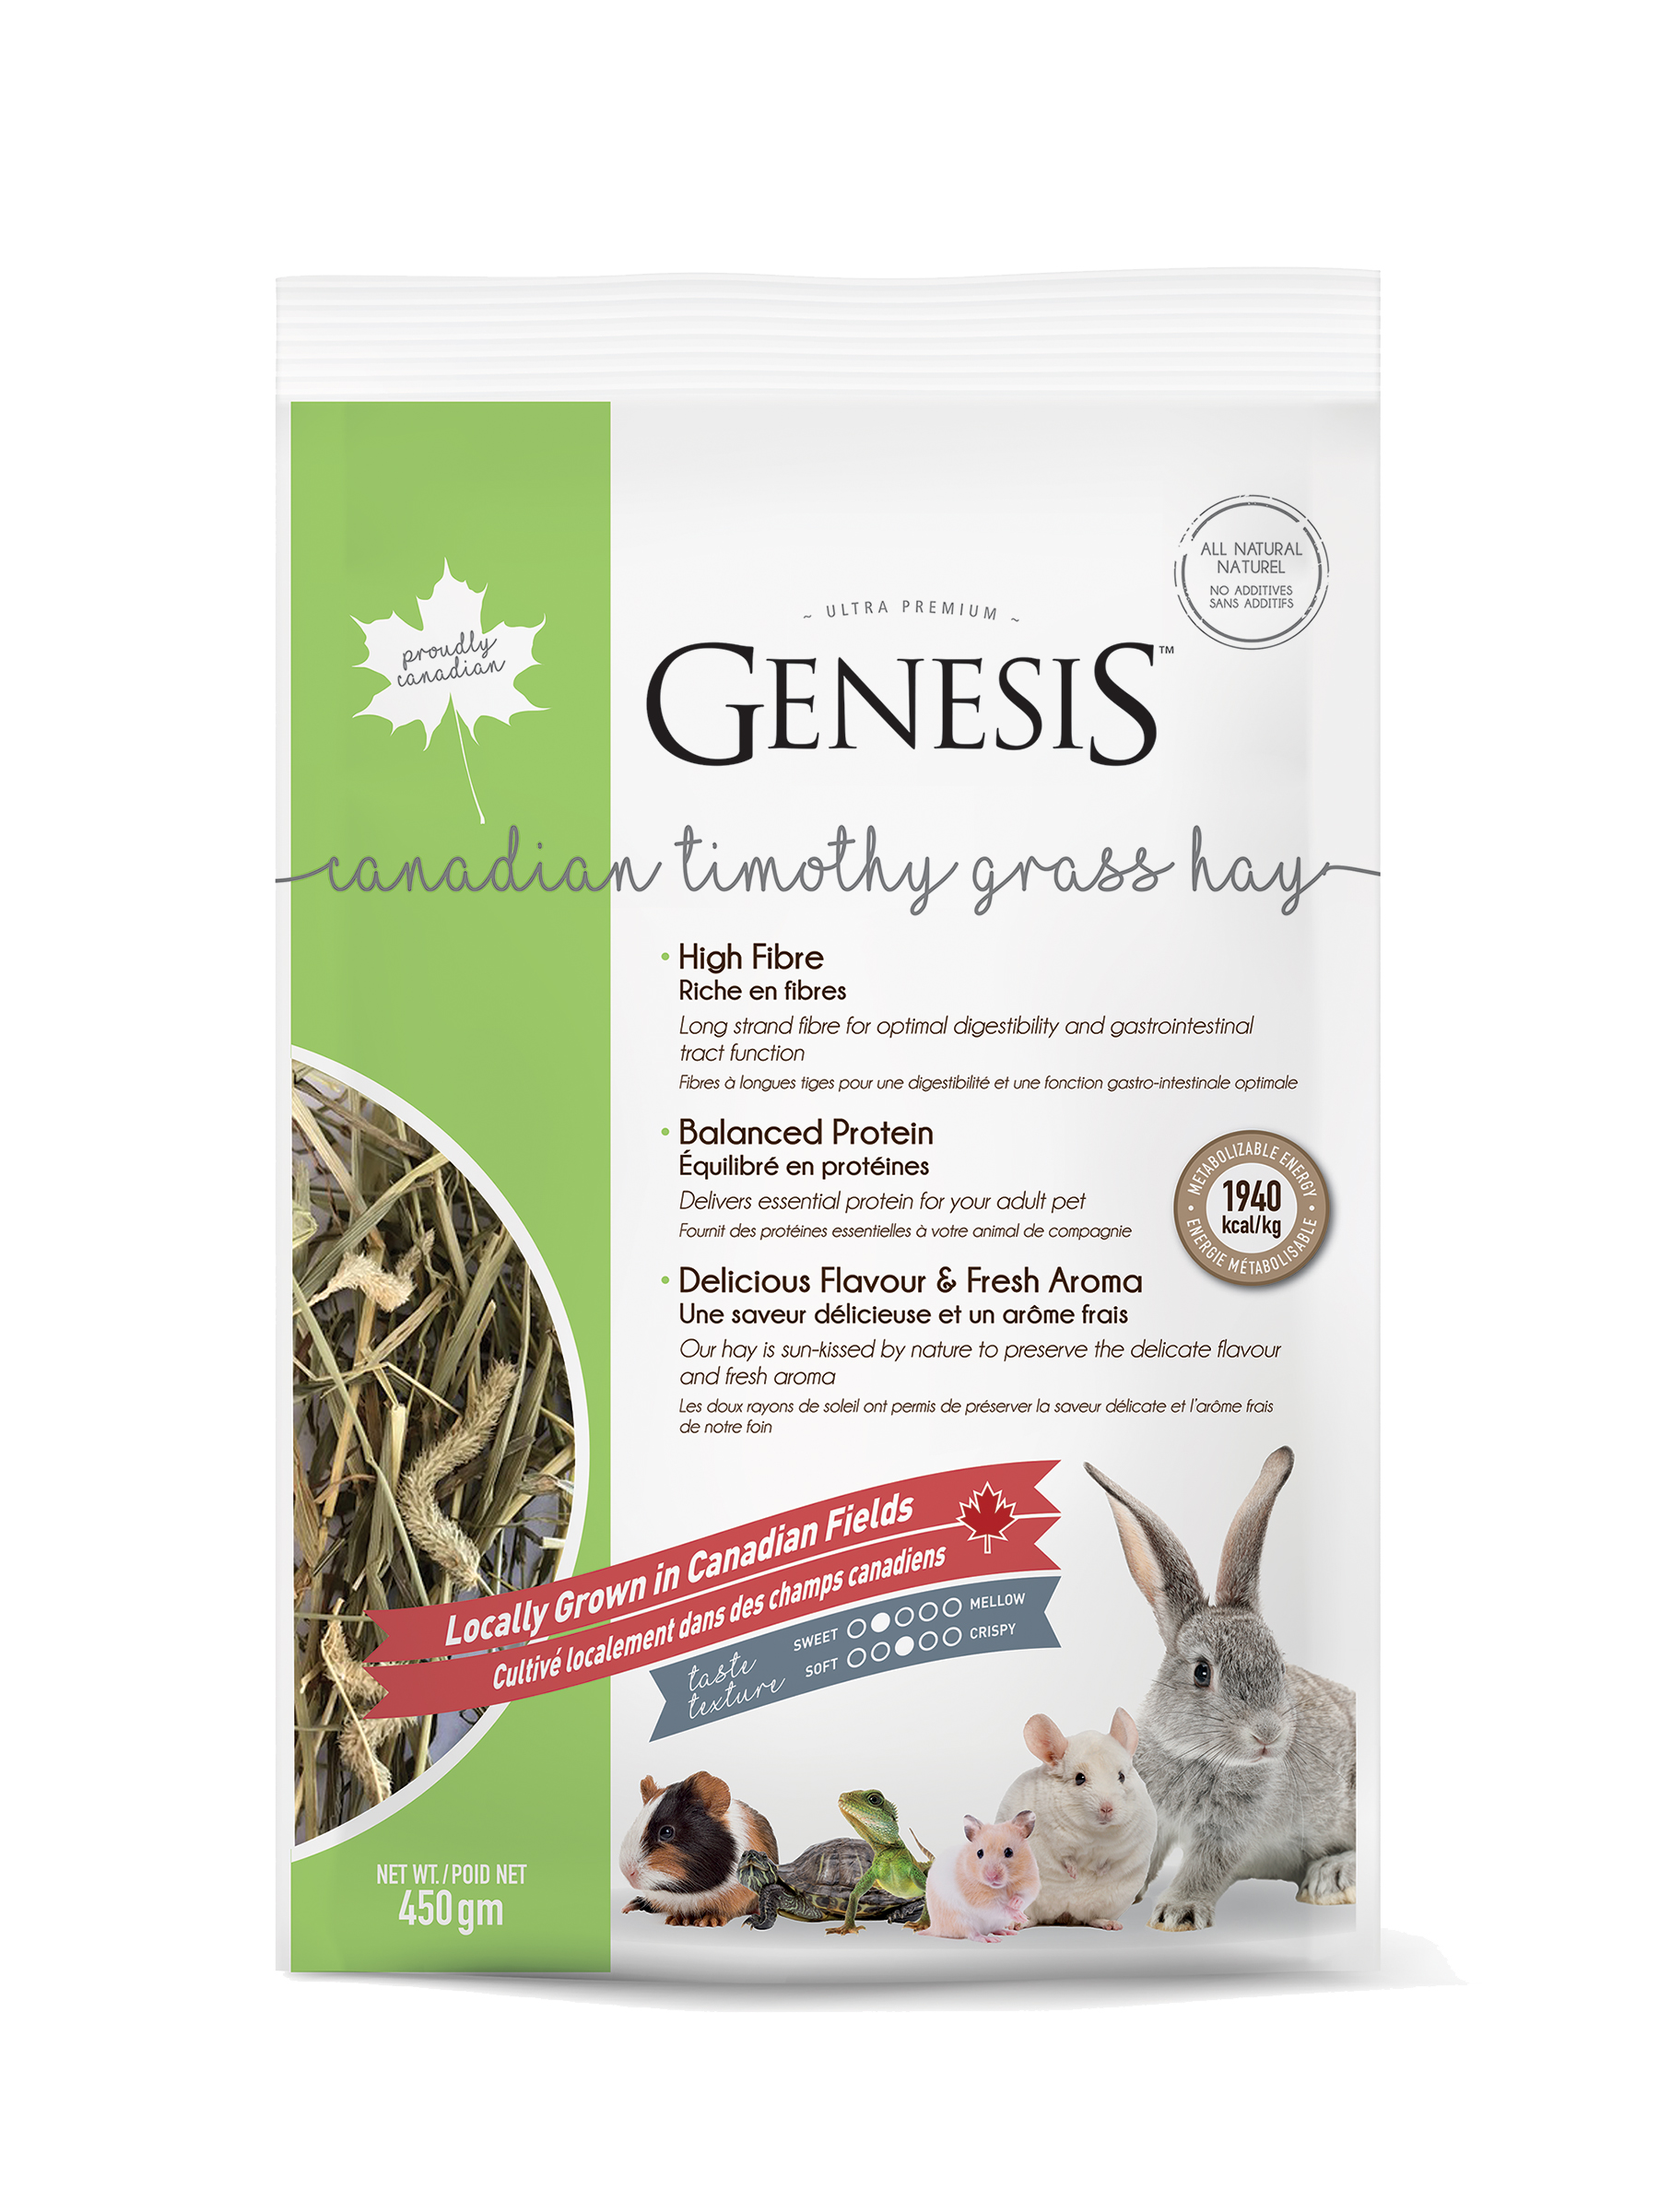 Genesis Canadian Timothy Grass Hay - A delicious mix of sun-kissed hay offering exceptional flavour and fragrance that will keep your pet coming back for more.